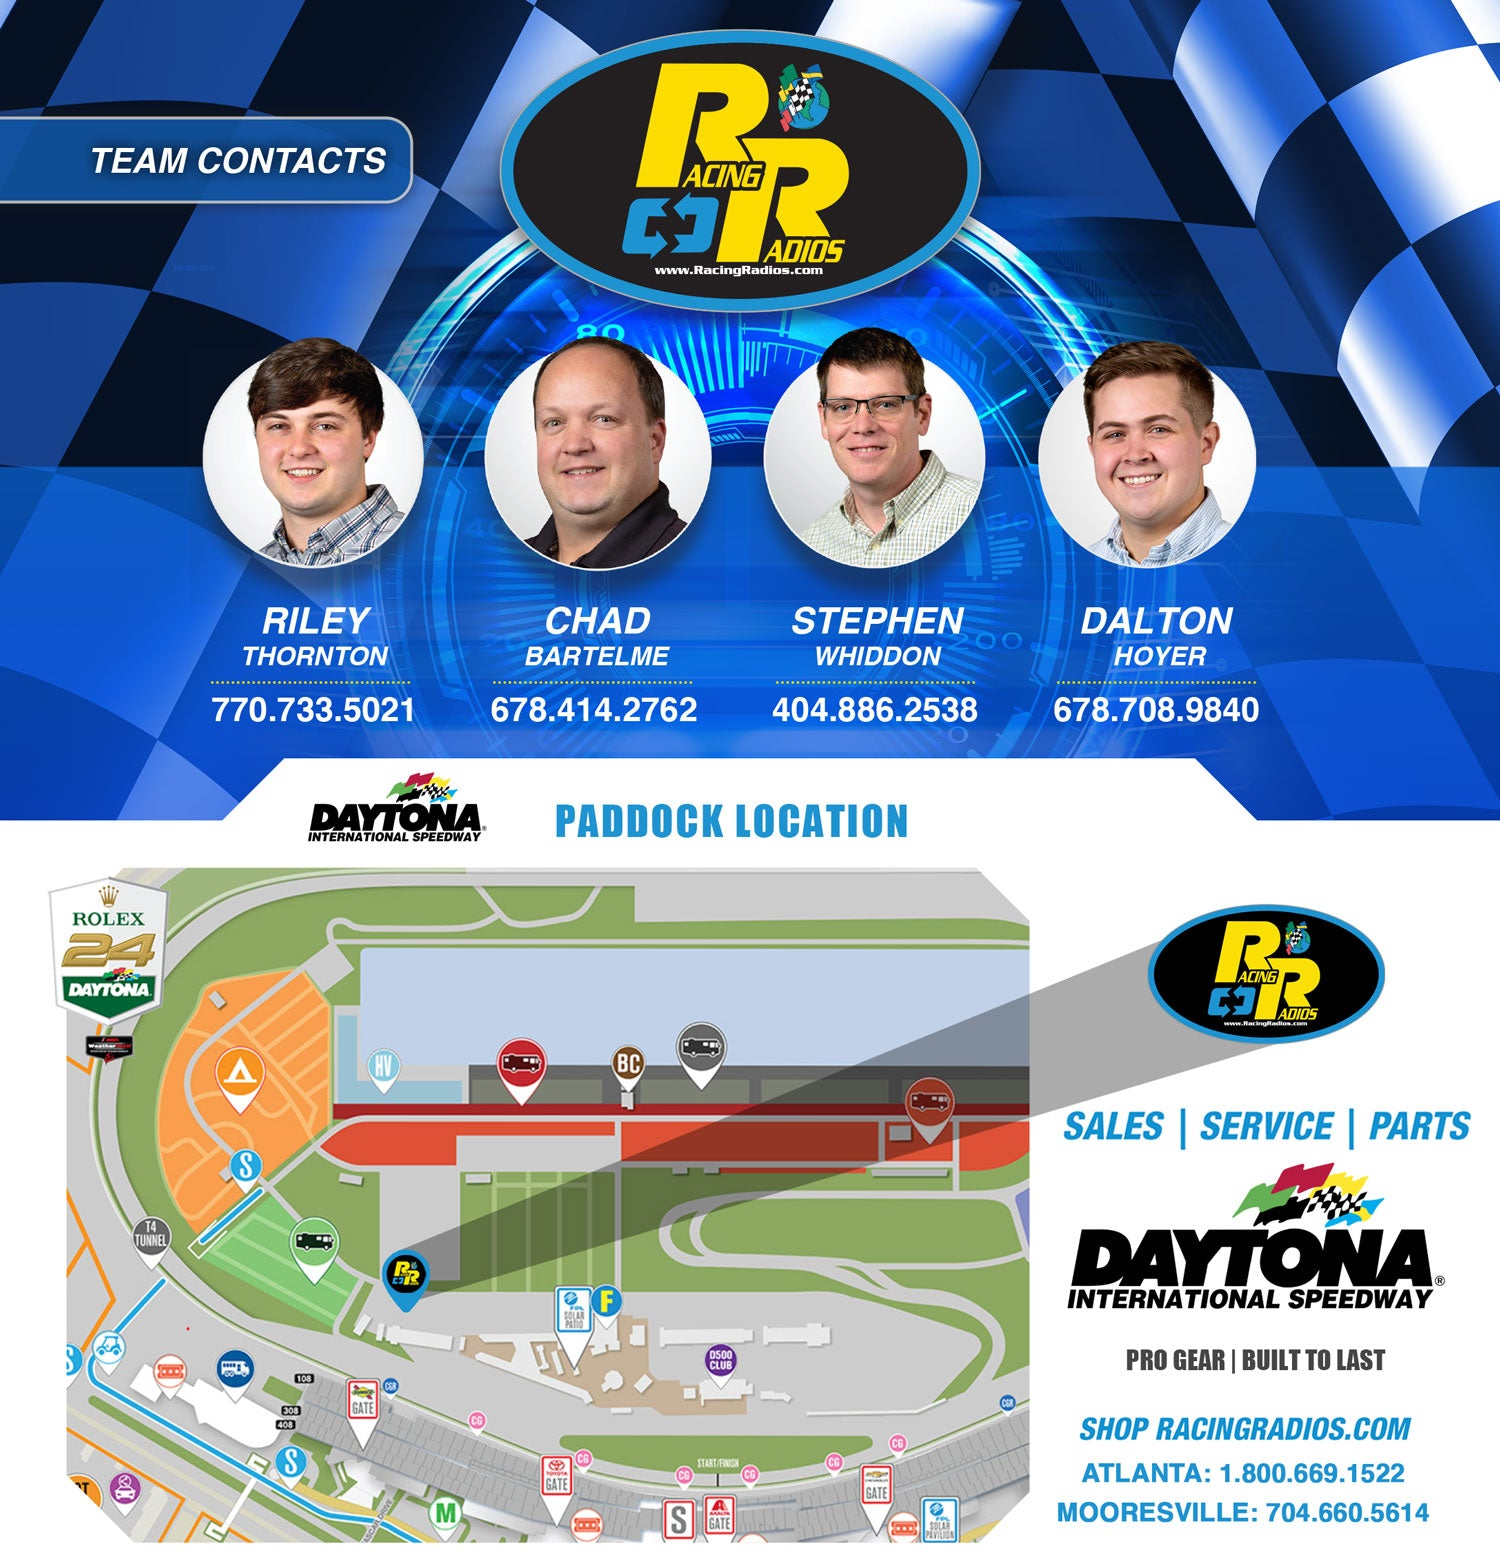 Rolex 24 Racing Radios Vendor Sales & Support | The Leader In Racing Radio Two-Way Communication